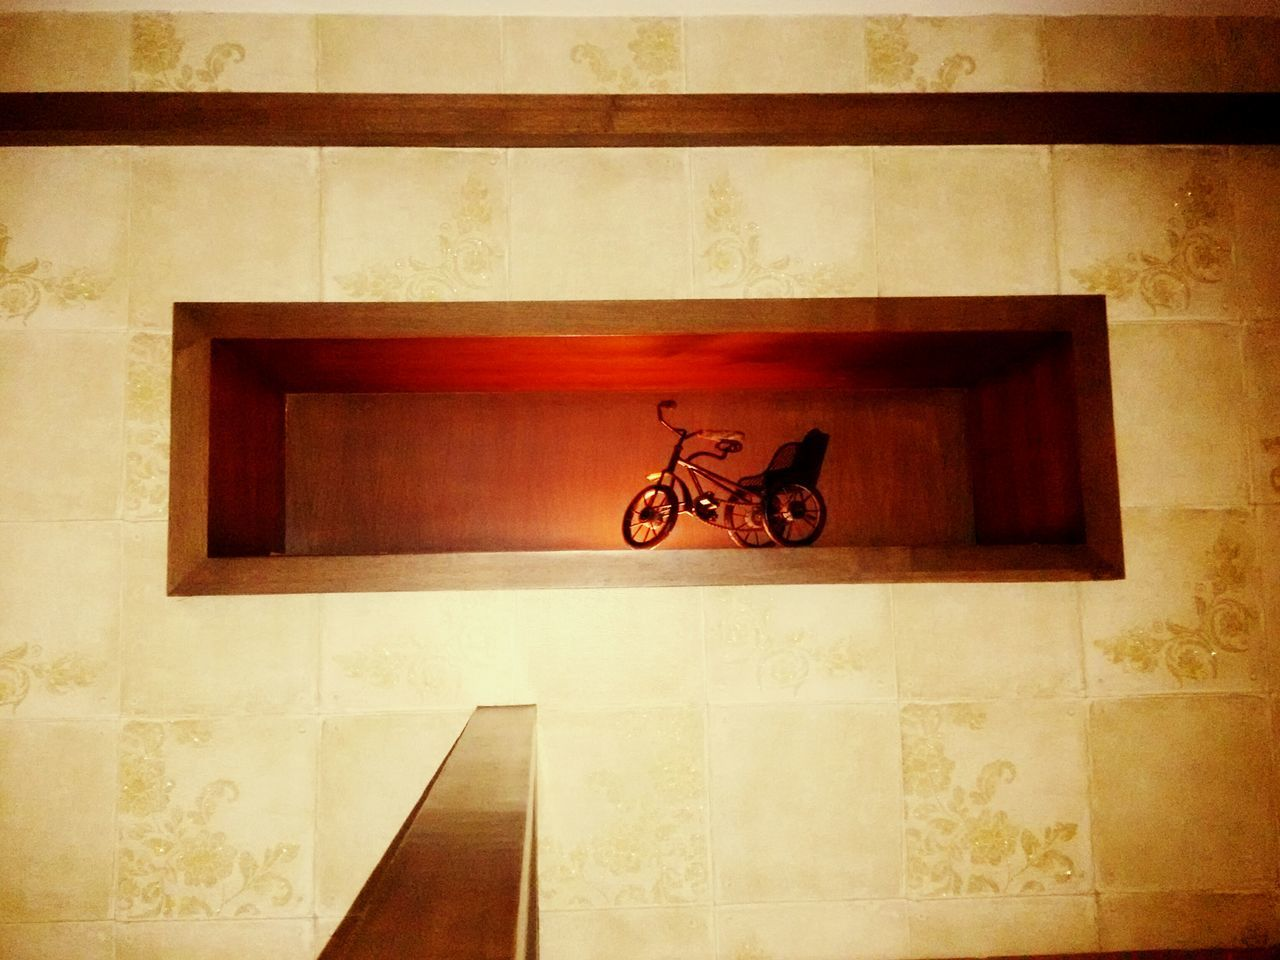 Toy Bicycle In Cabinet On Wall At Home